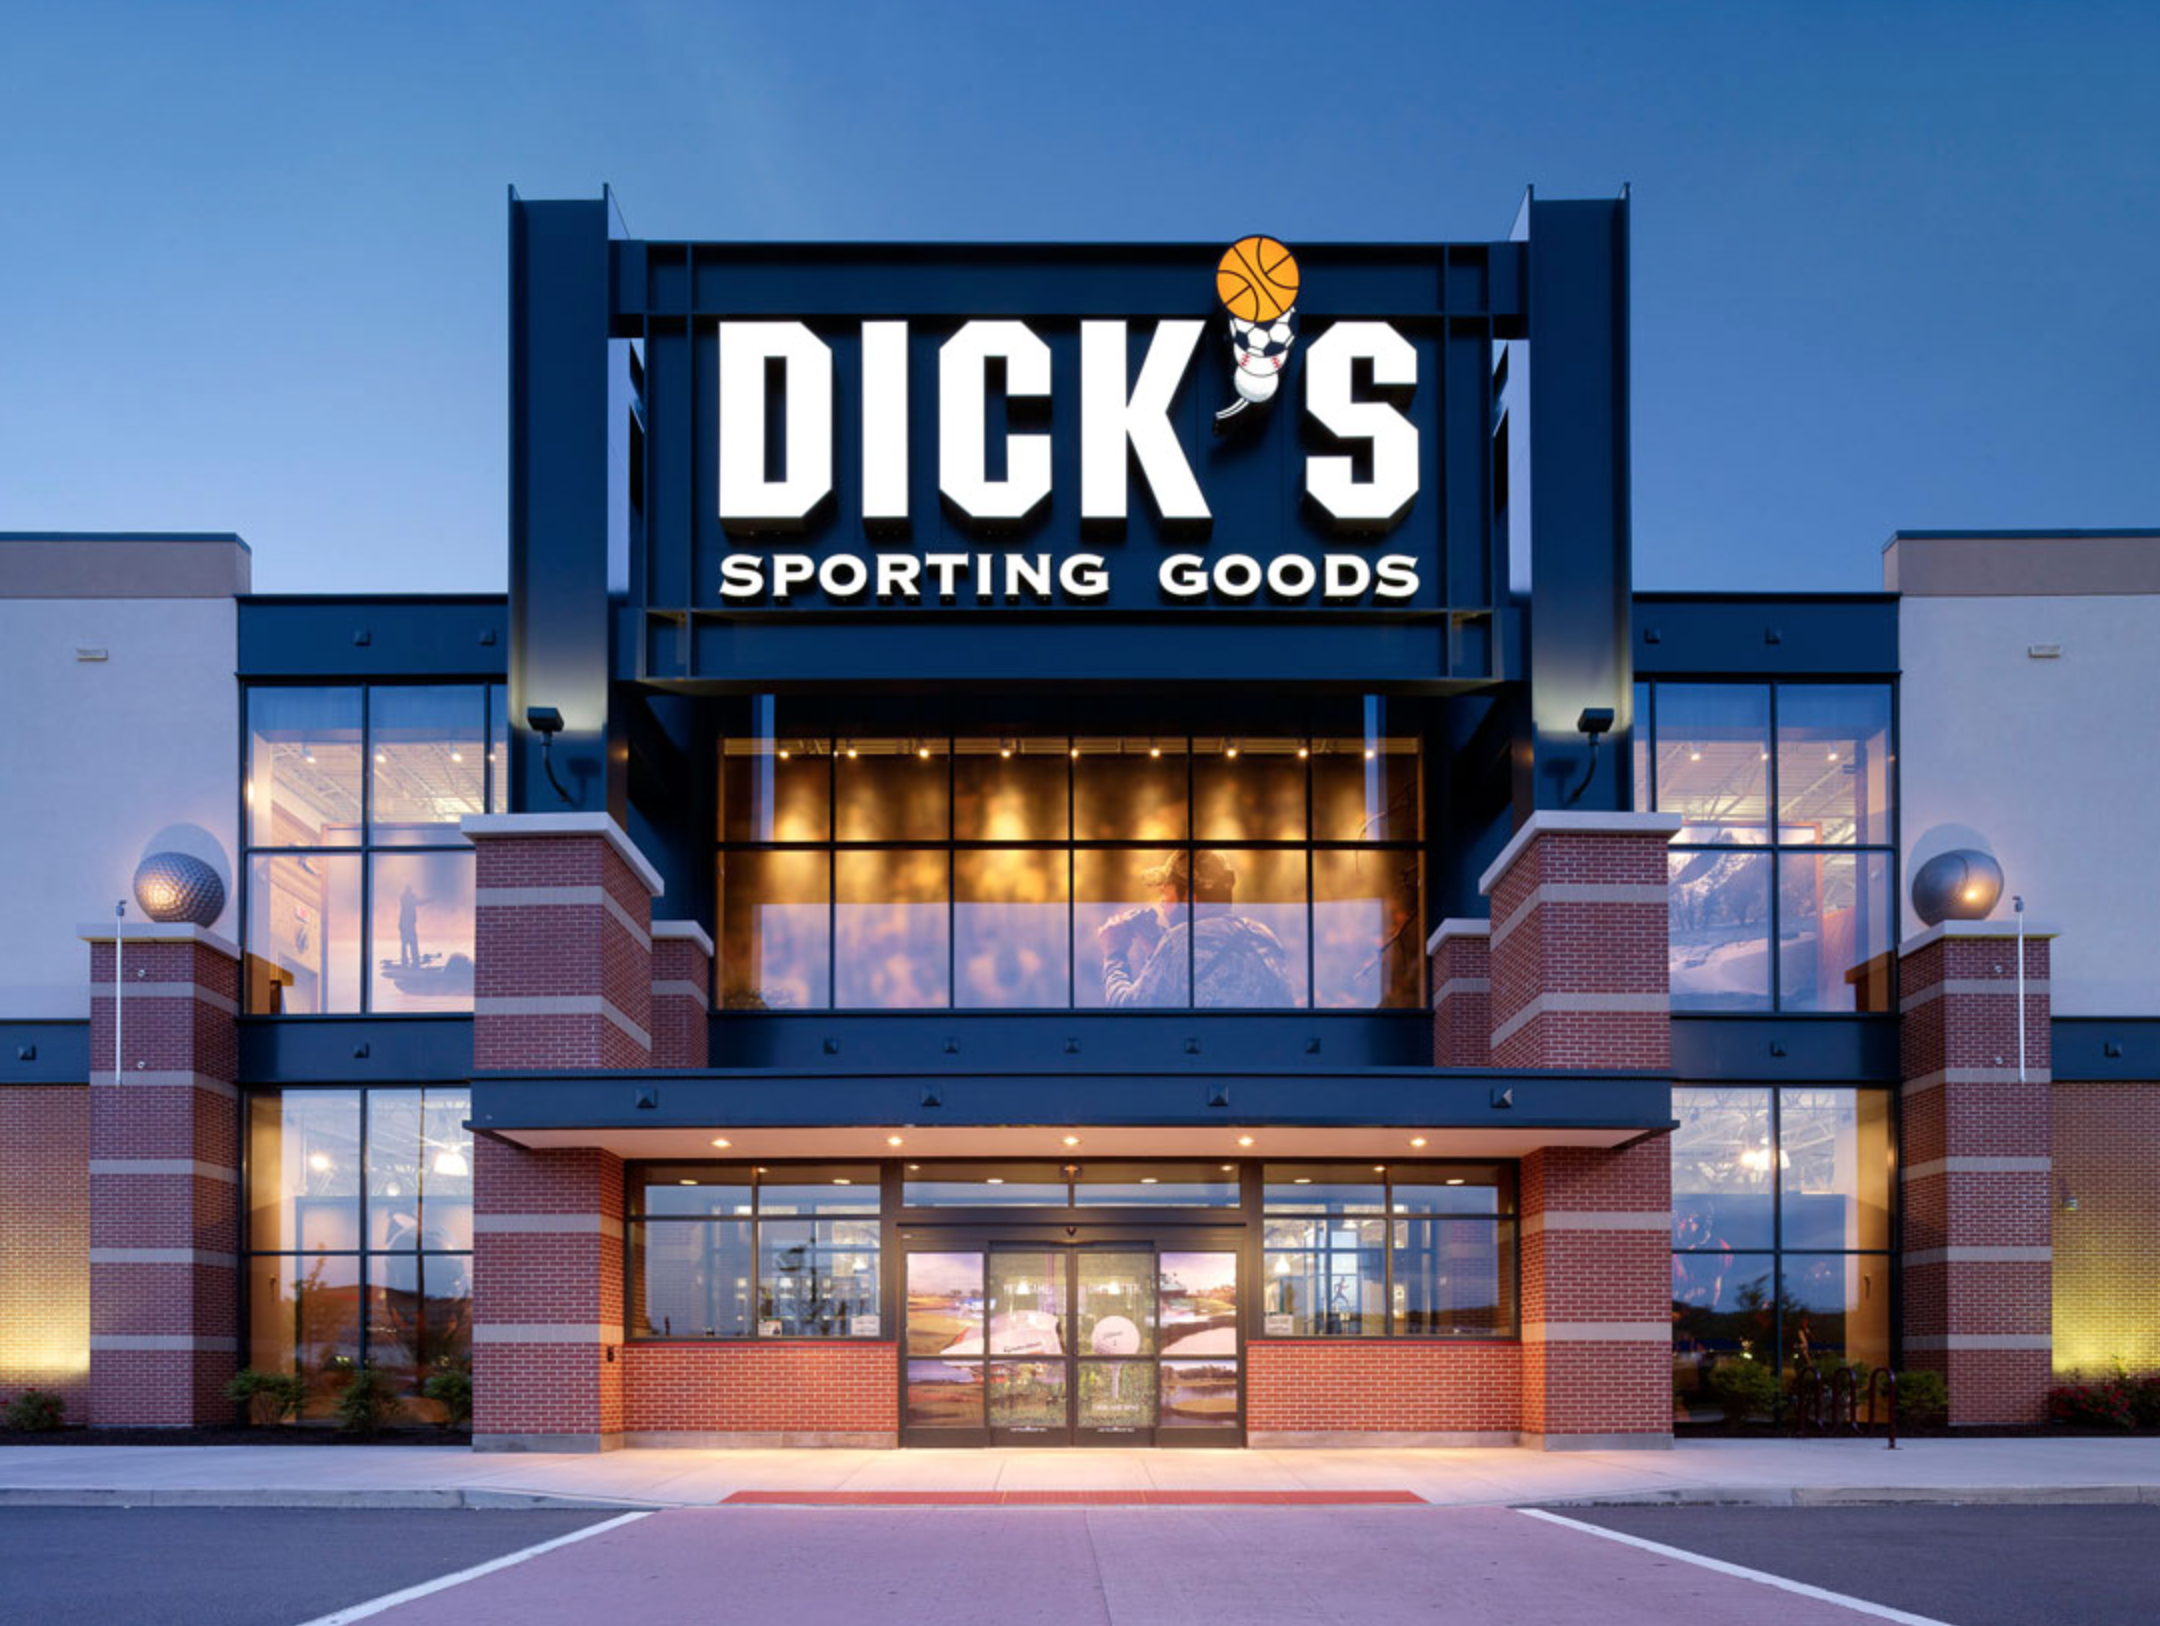 Visit DICK'S Sporting Goods and Shop a Wide Selection of Sports Gear, Equipment, Shop Our Official Site · Shop Gift Cards Online · High Customer Ratings · Top Products & BrandsTypes: Apparel, Footwear, Outdoors, Sports, Hunting, Fishing.